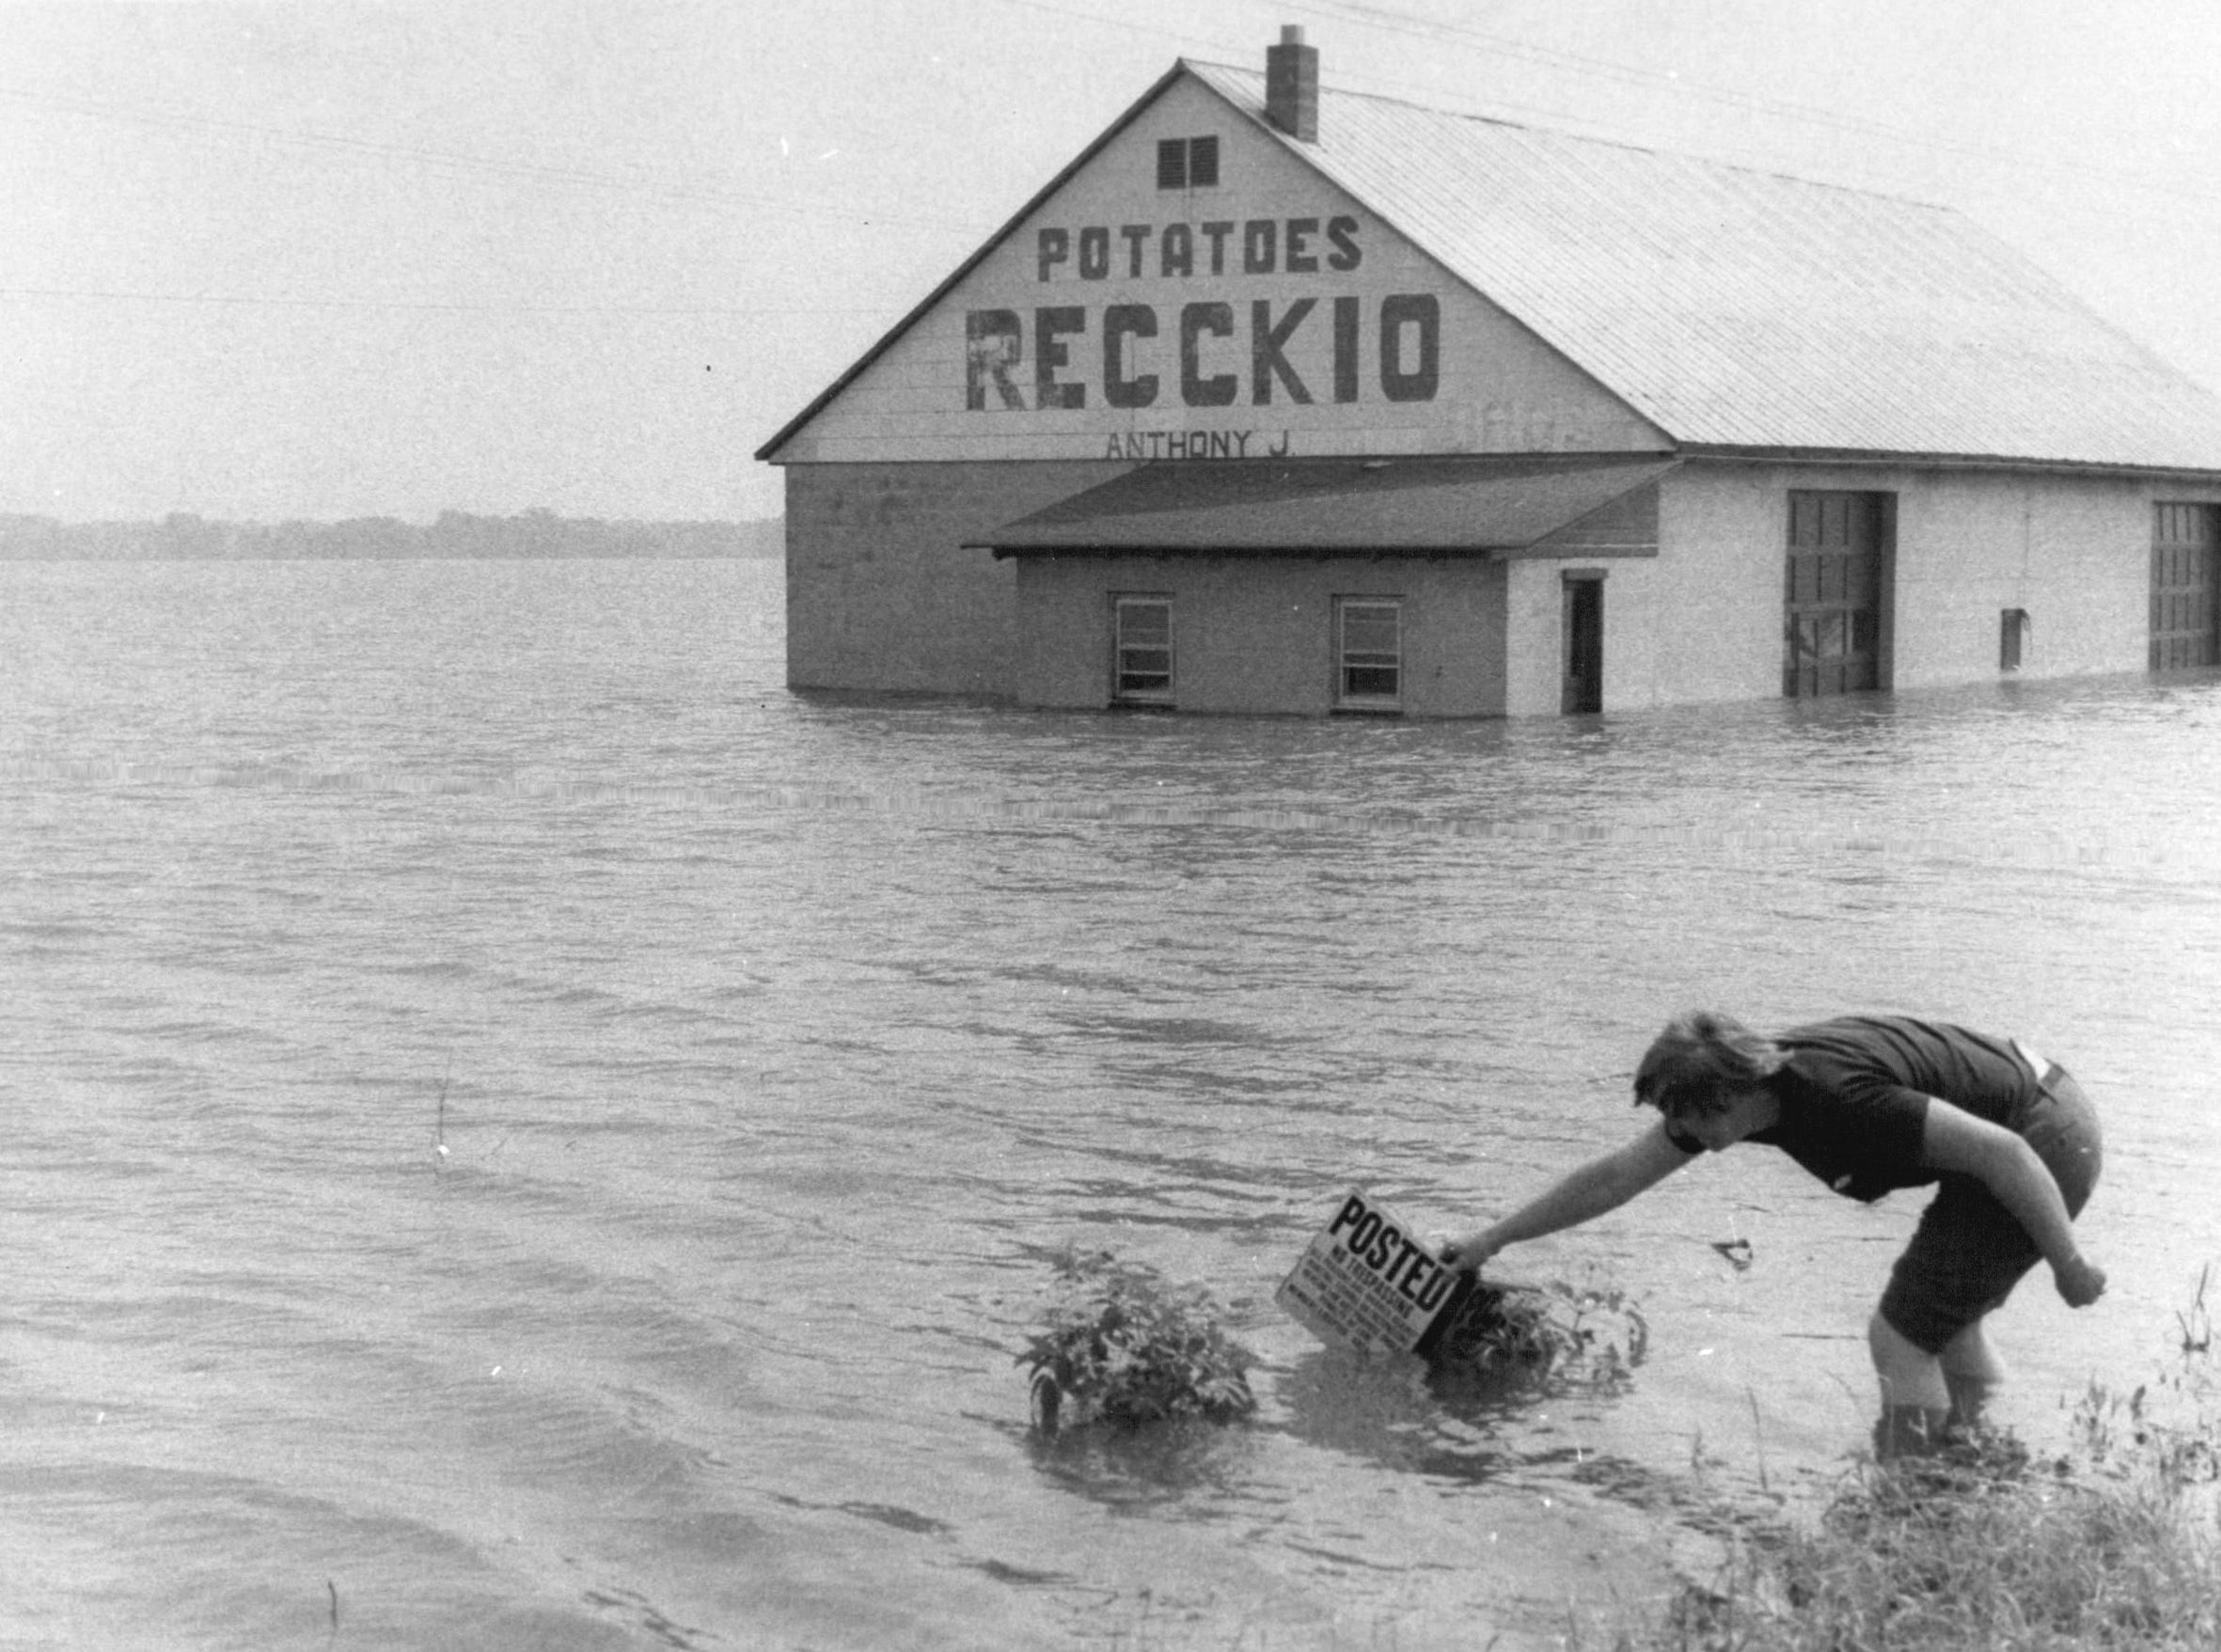 1972 flooding in Wayne County.